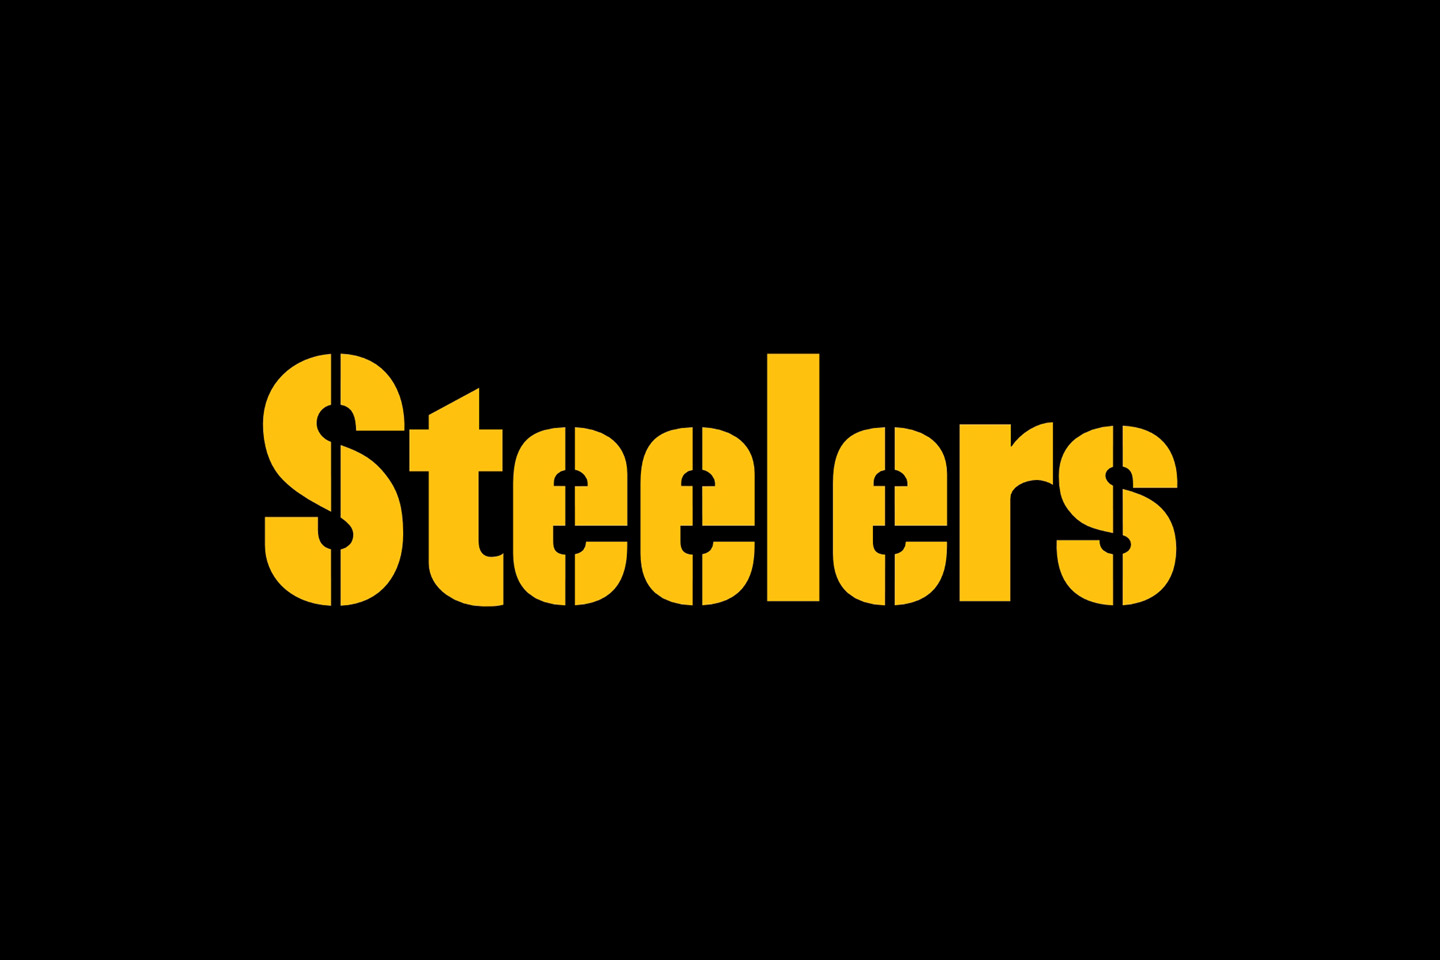 Awesome Pittsburgh Steelers wallpaper Pittsburgh Steelers wallpapers 1440x960